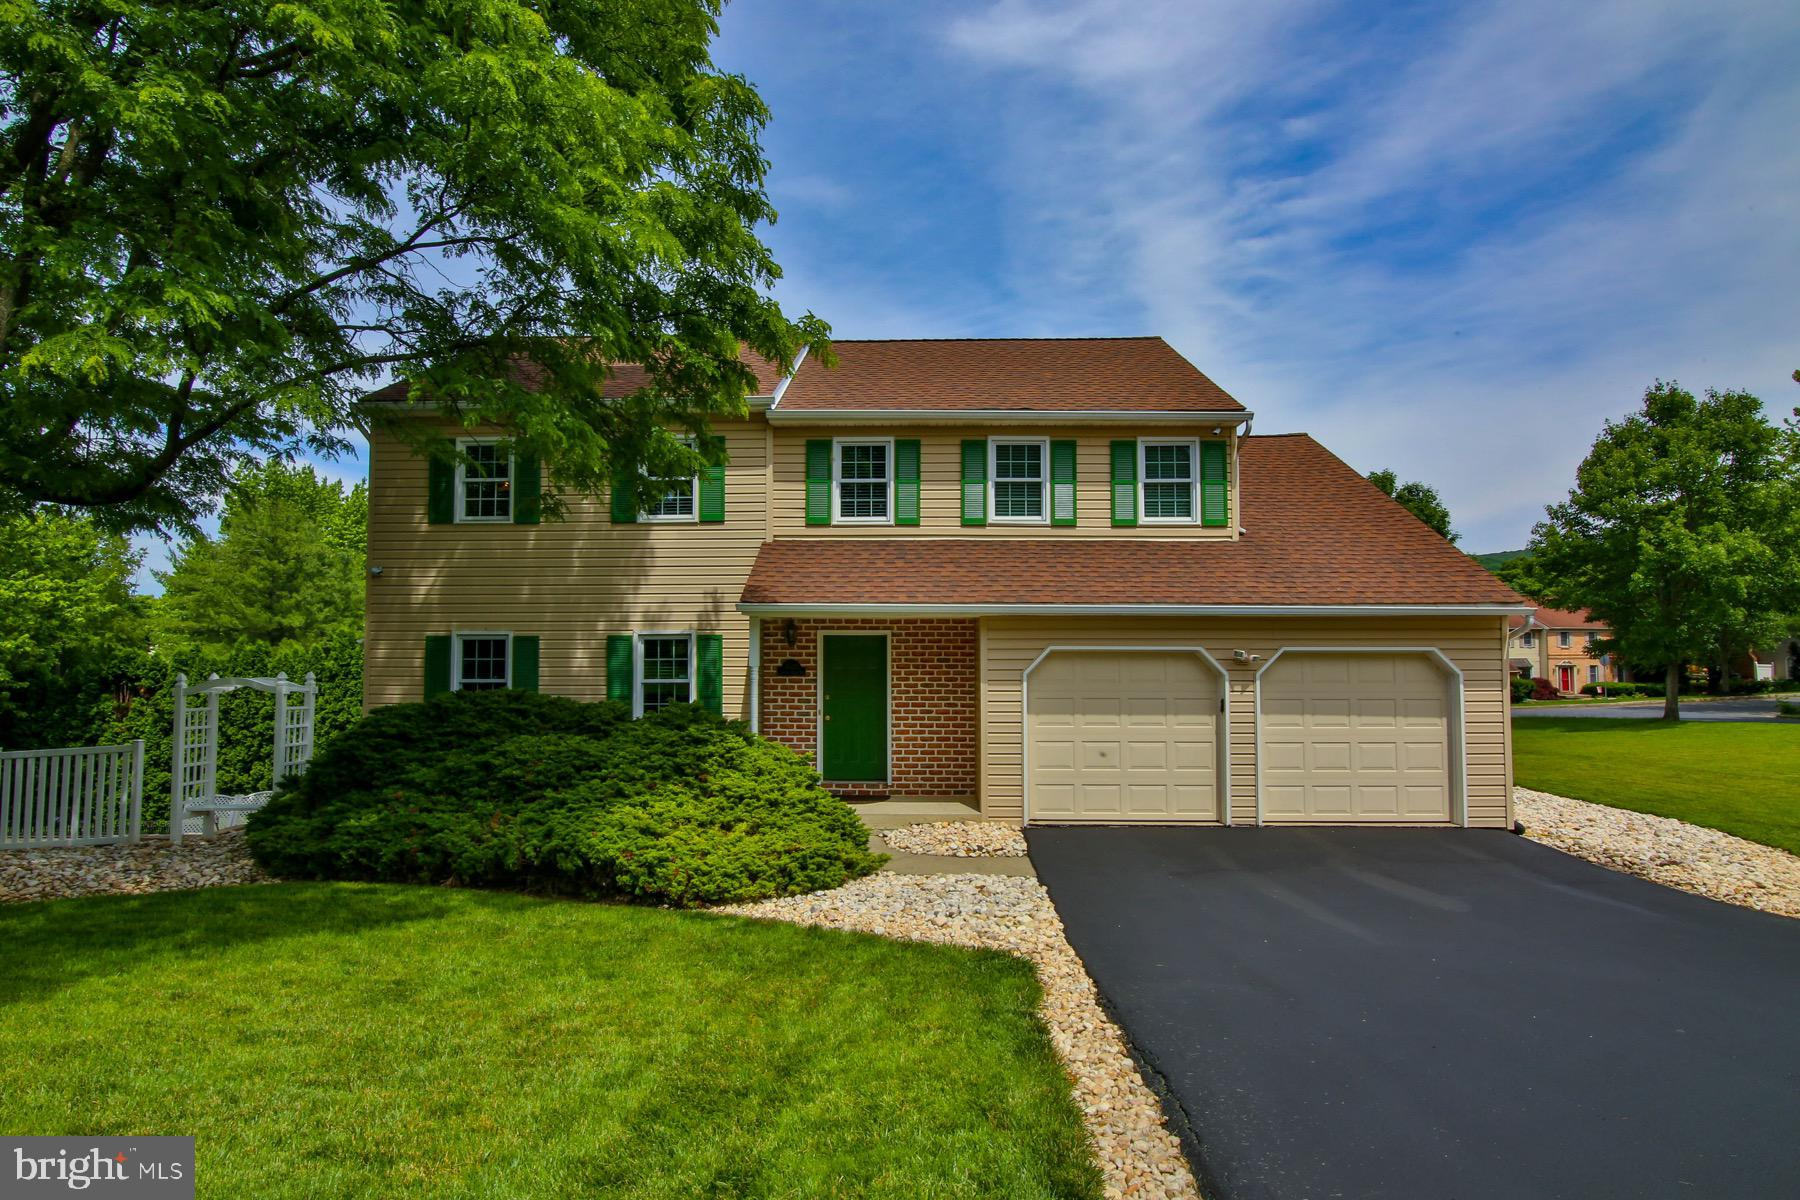 3525 COUNTRY CLUB ROAD, ALLENTOWN, PA 18103